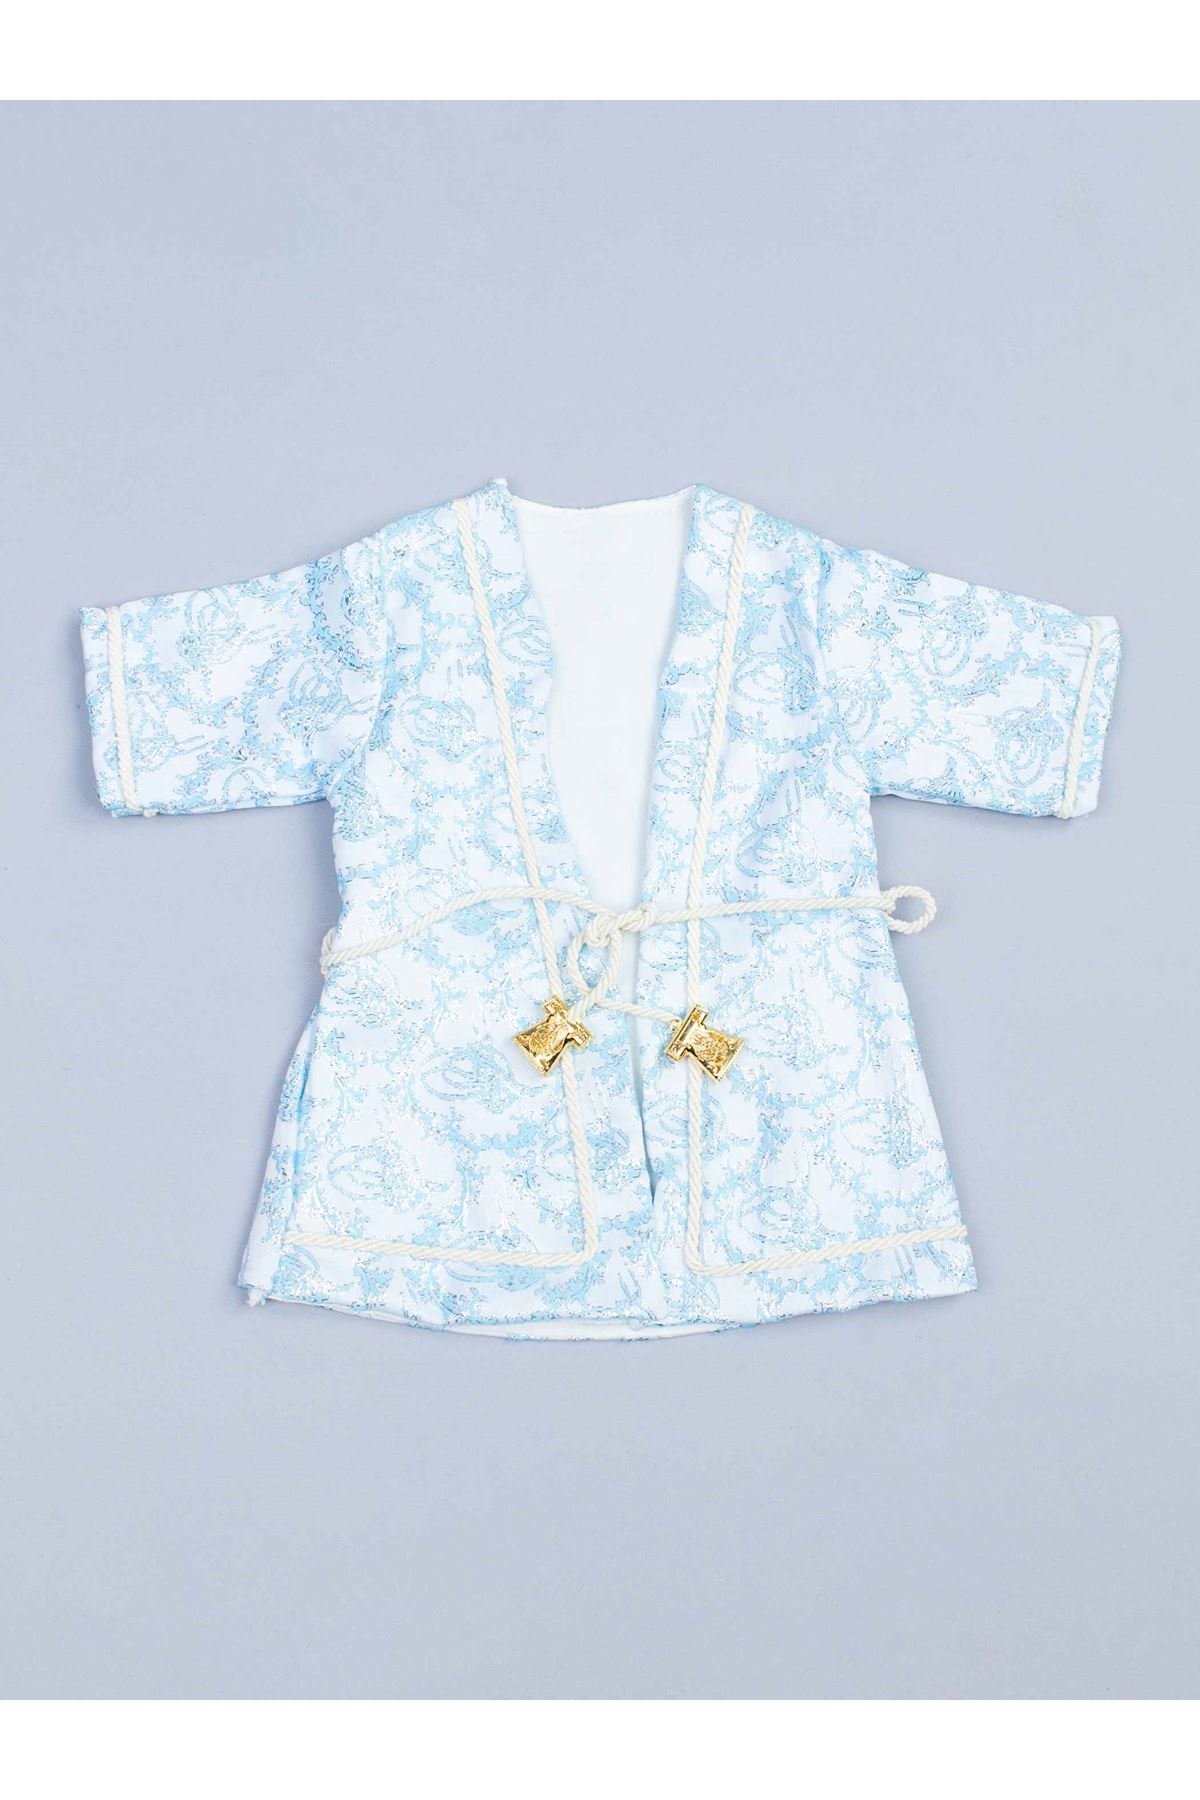 Baby Boy Blue Prince Suit Old Nostalgia Vintage Ottoman Prince Special Occasions Stylish Babies 5-piece Comfortable Fashion boys